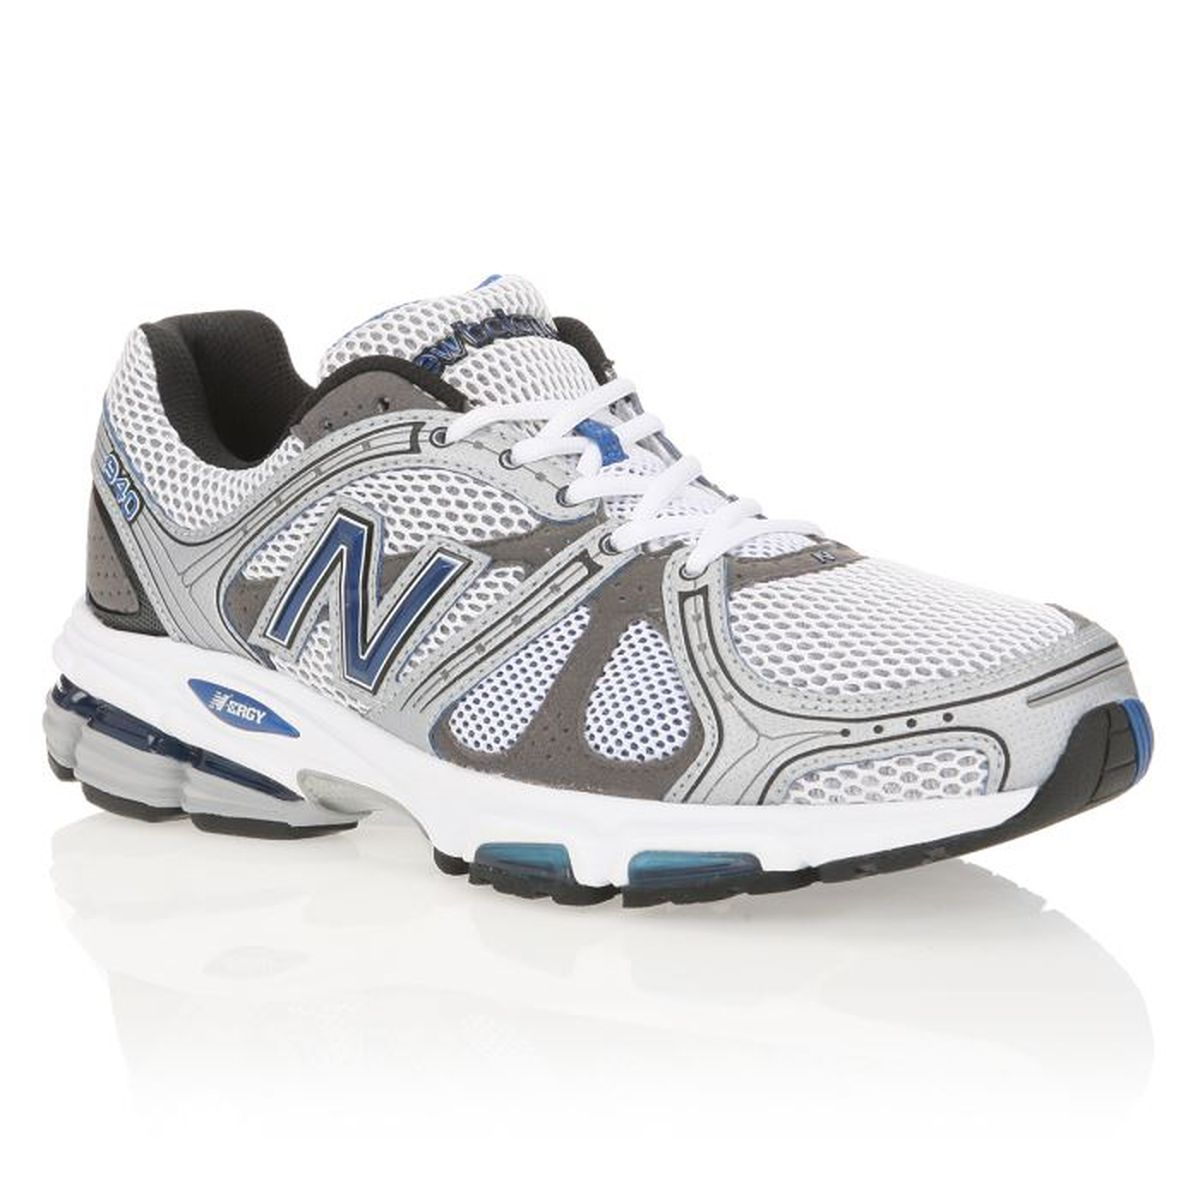 new balance chaussures de running mr940 d homme prix pas cher cdiscount. Black Bedroom Furniture Sets. Home Design Ideas